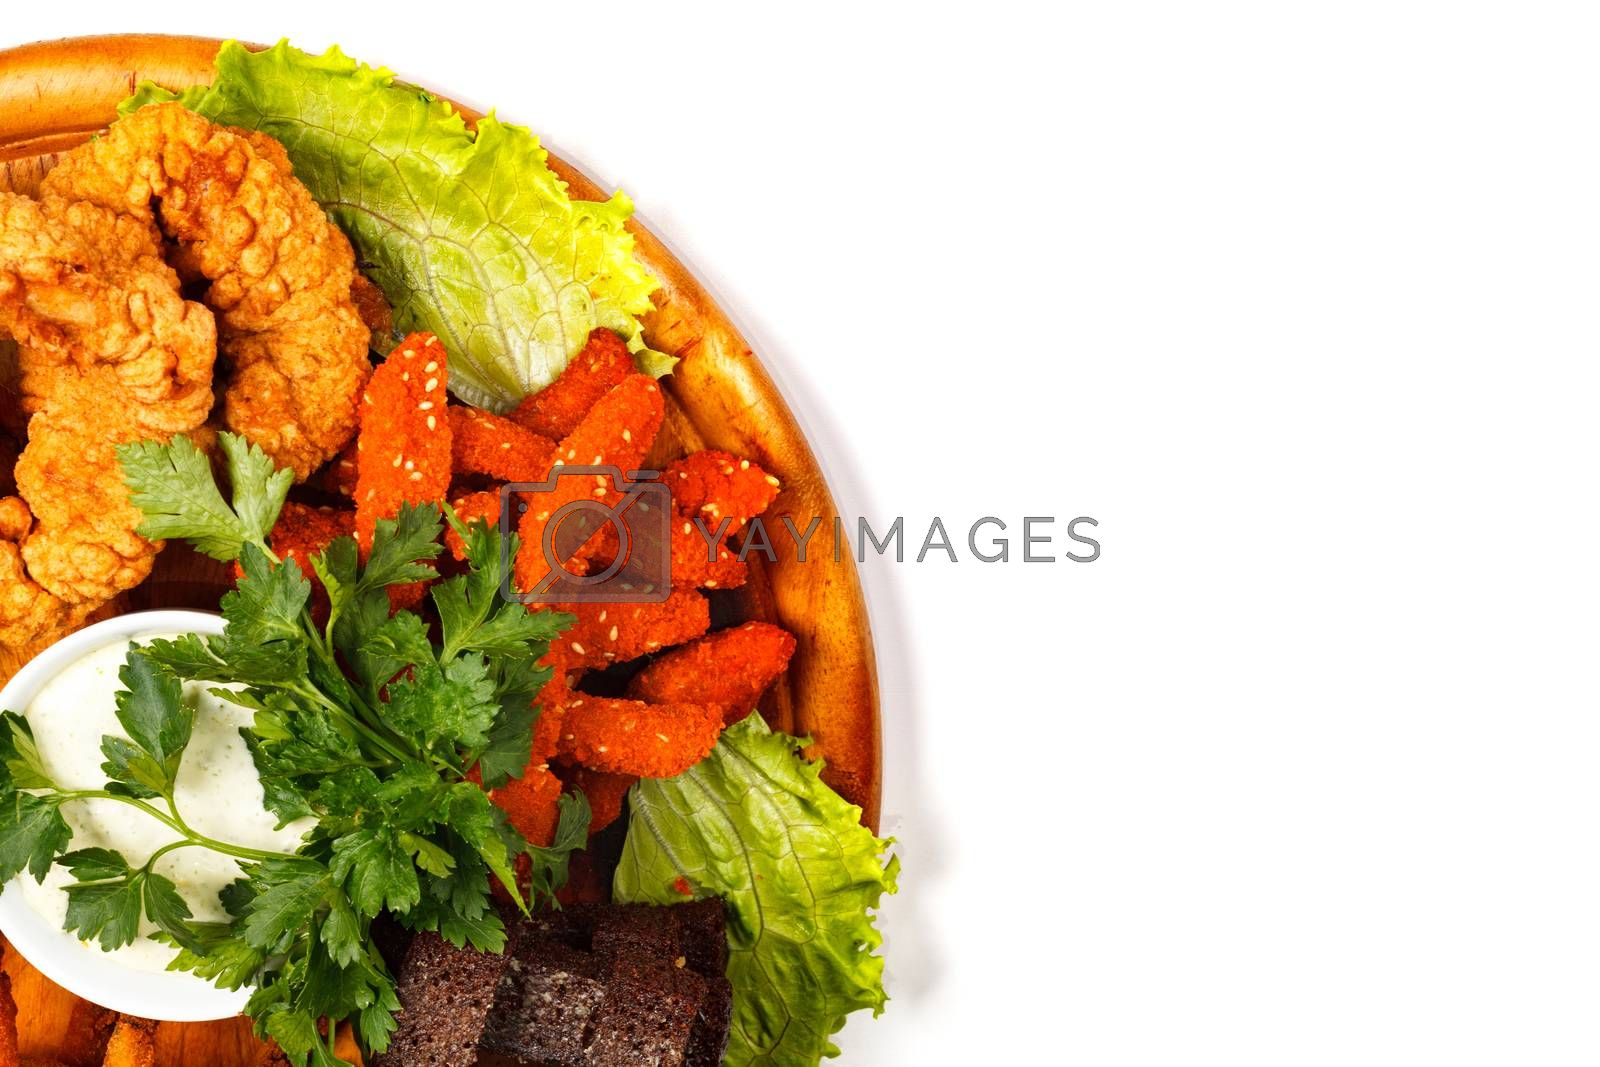 Closeup shot of a food tray full of tasty snacks, isolated on white background. Flat lay